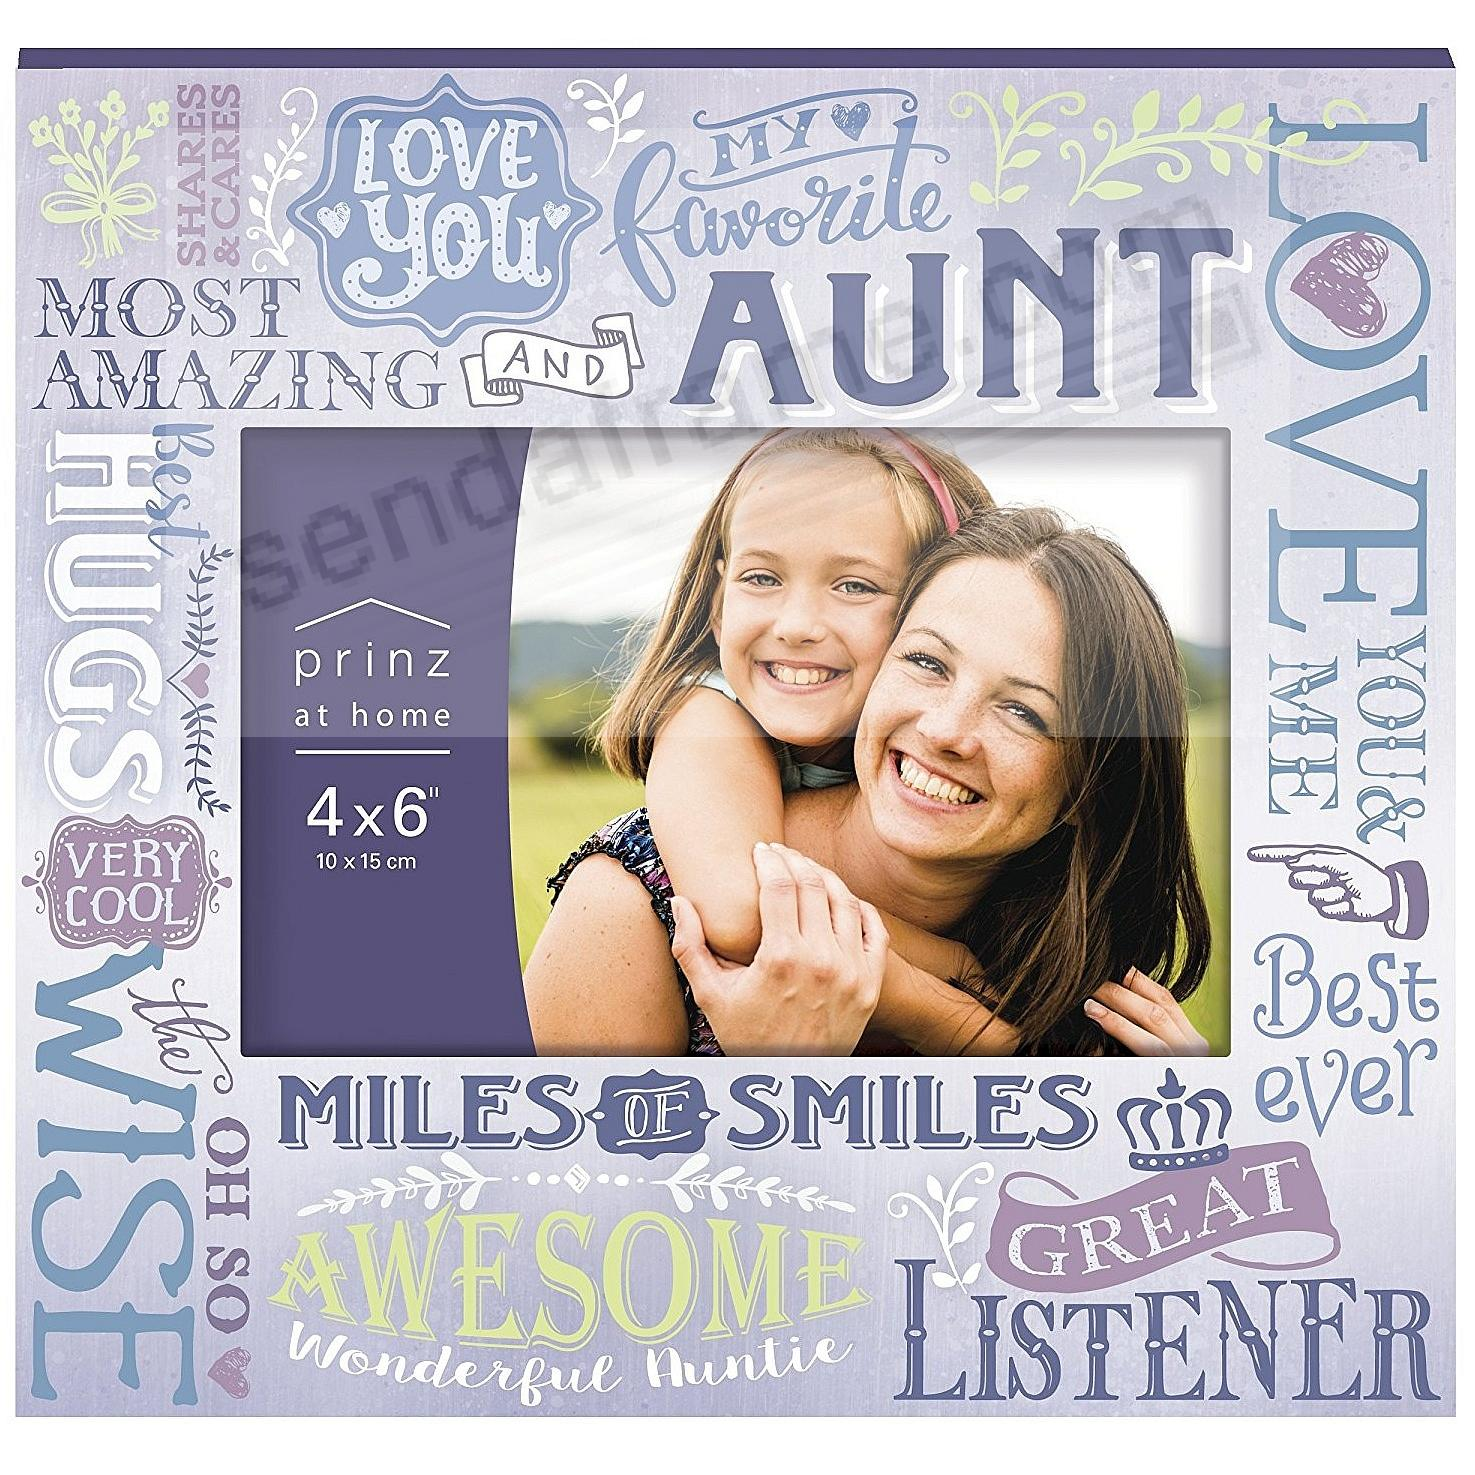 MORE THAN WORDS - AUNT - Wood Frame by Prinz® - Picture Frames ...